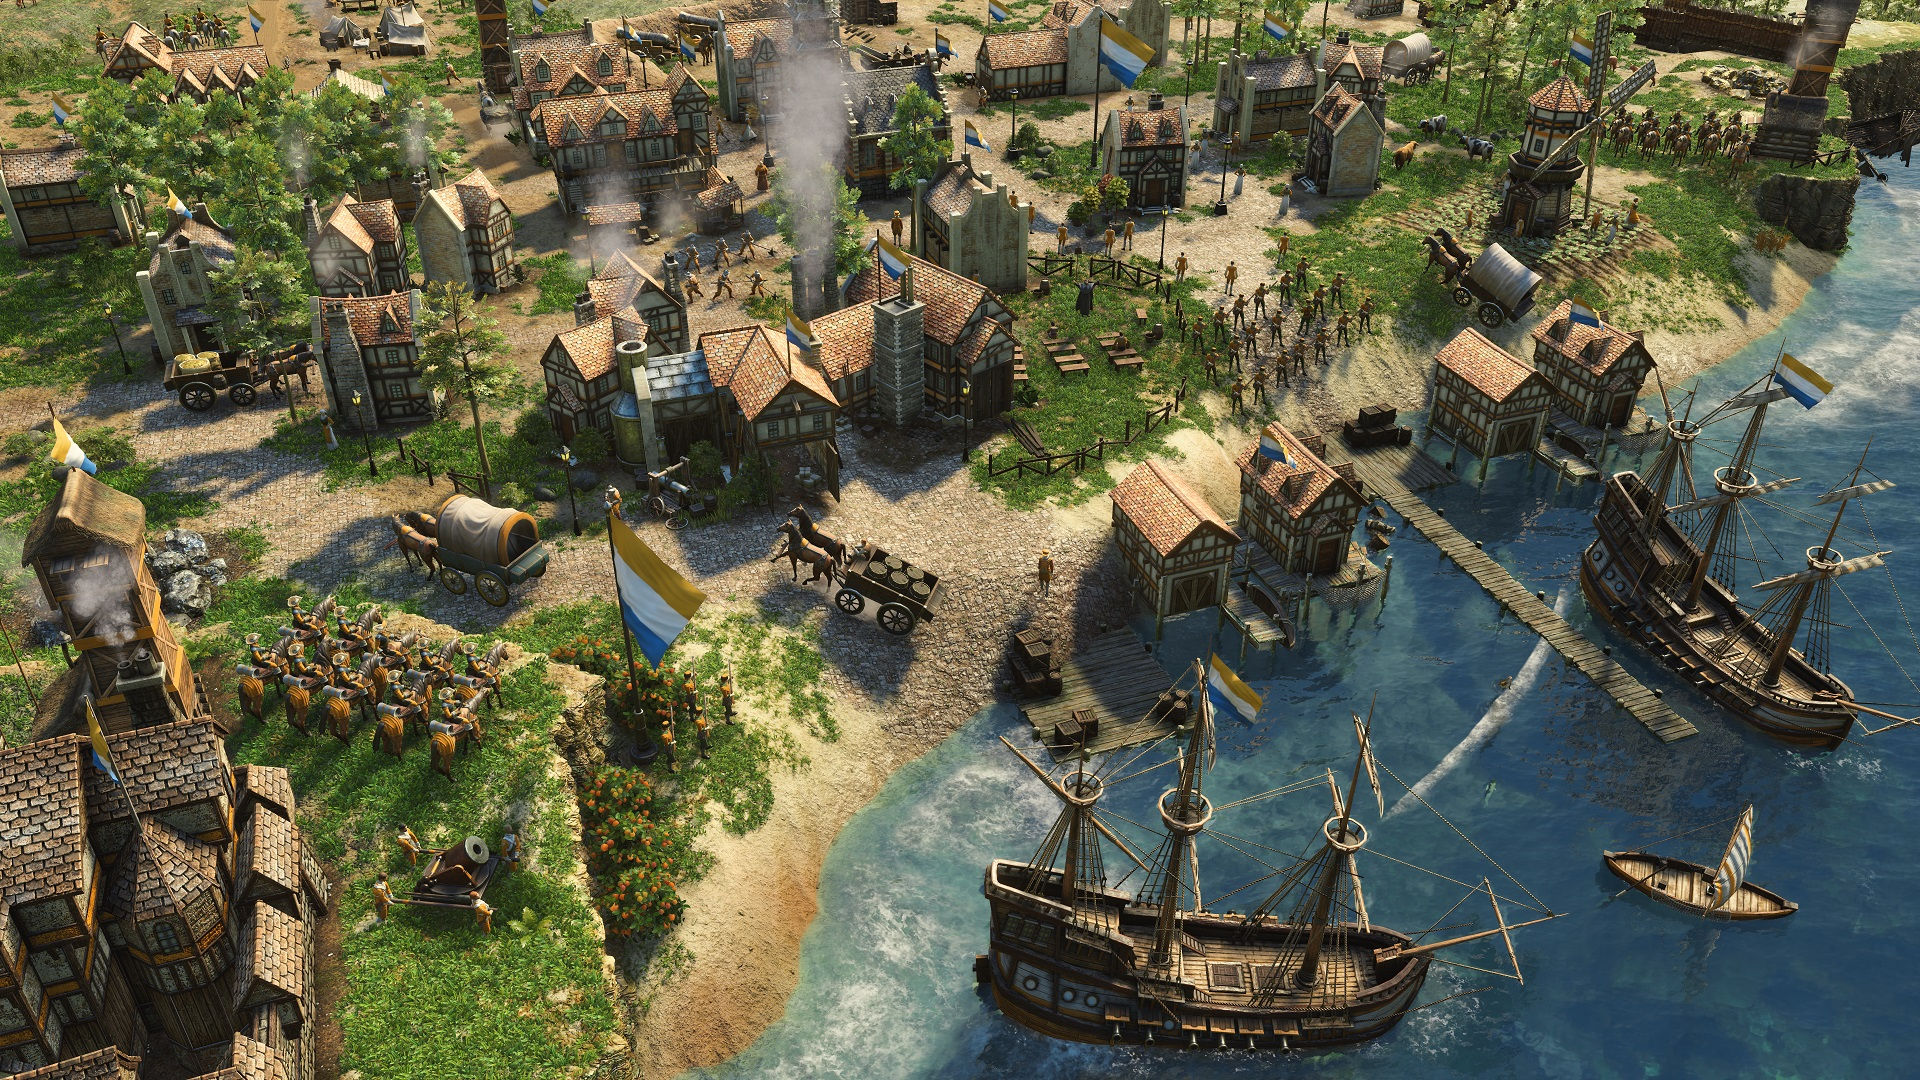 Dutch in Age of Empires III: Definitive Edition